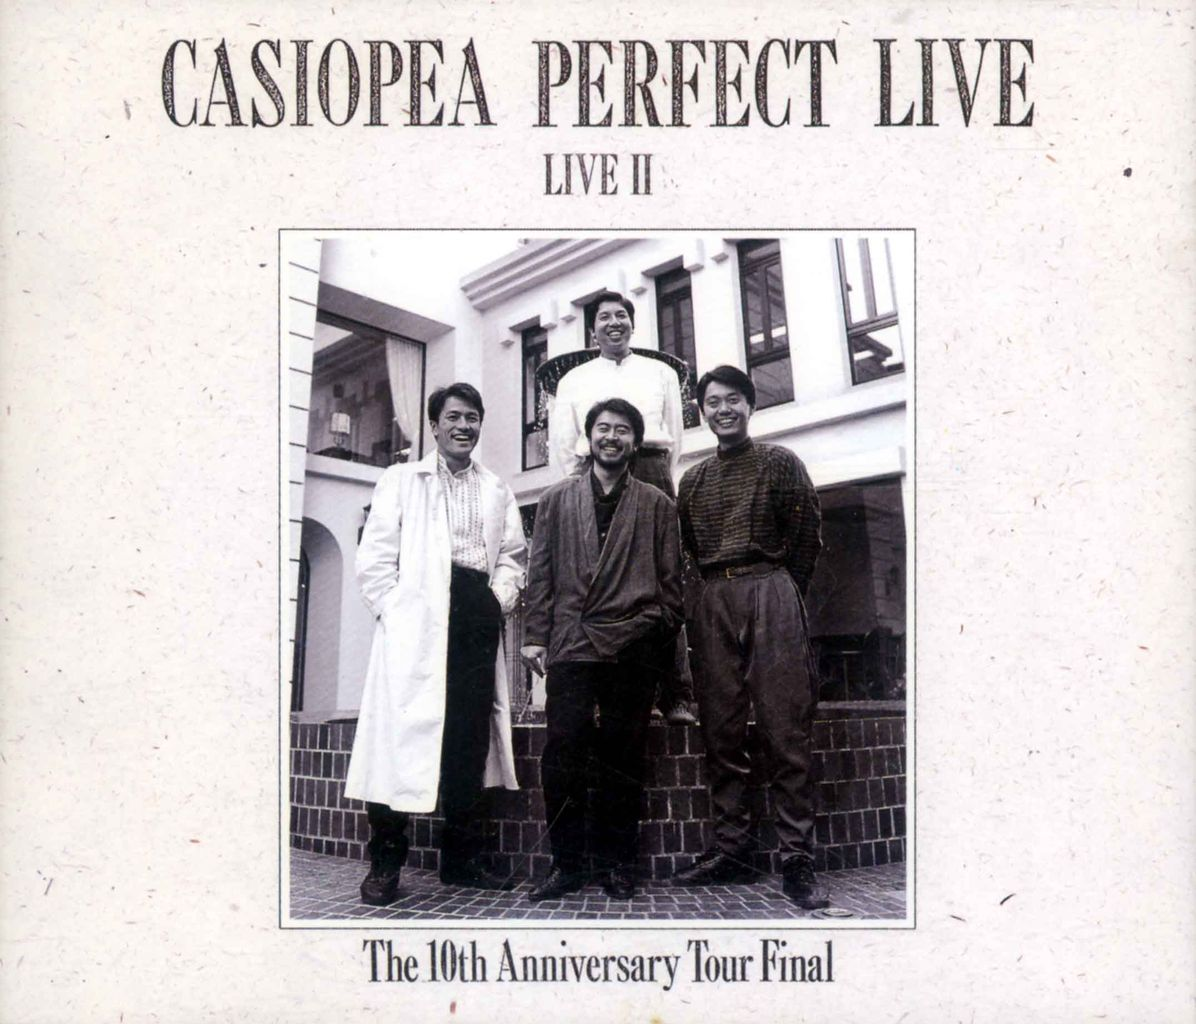 CASIOPEA PERFECT LIVE LIVEII-1